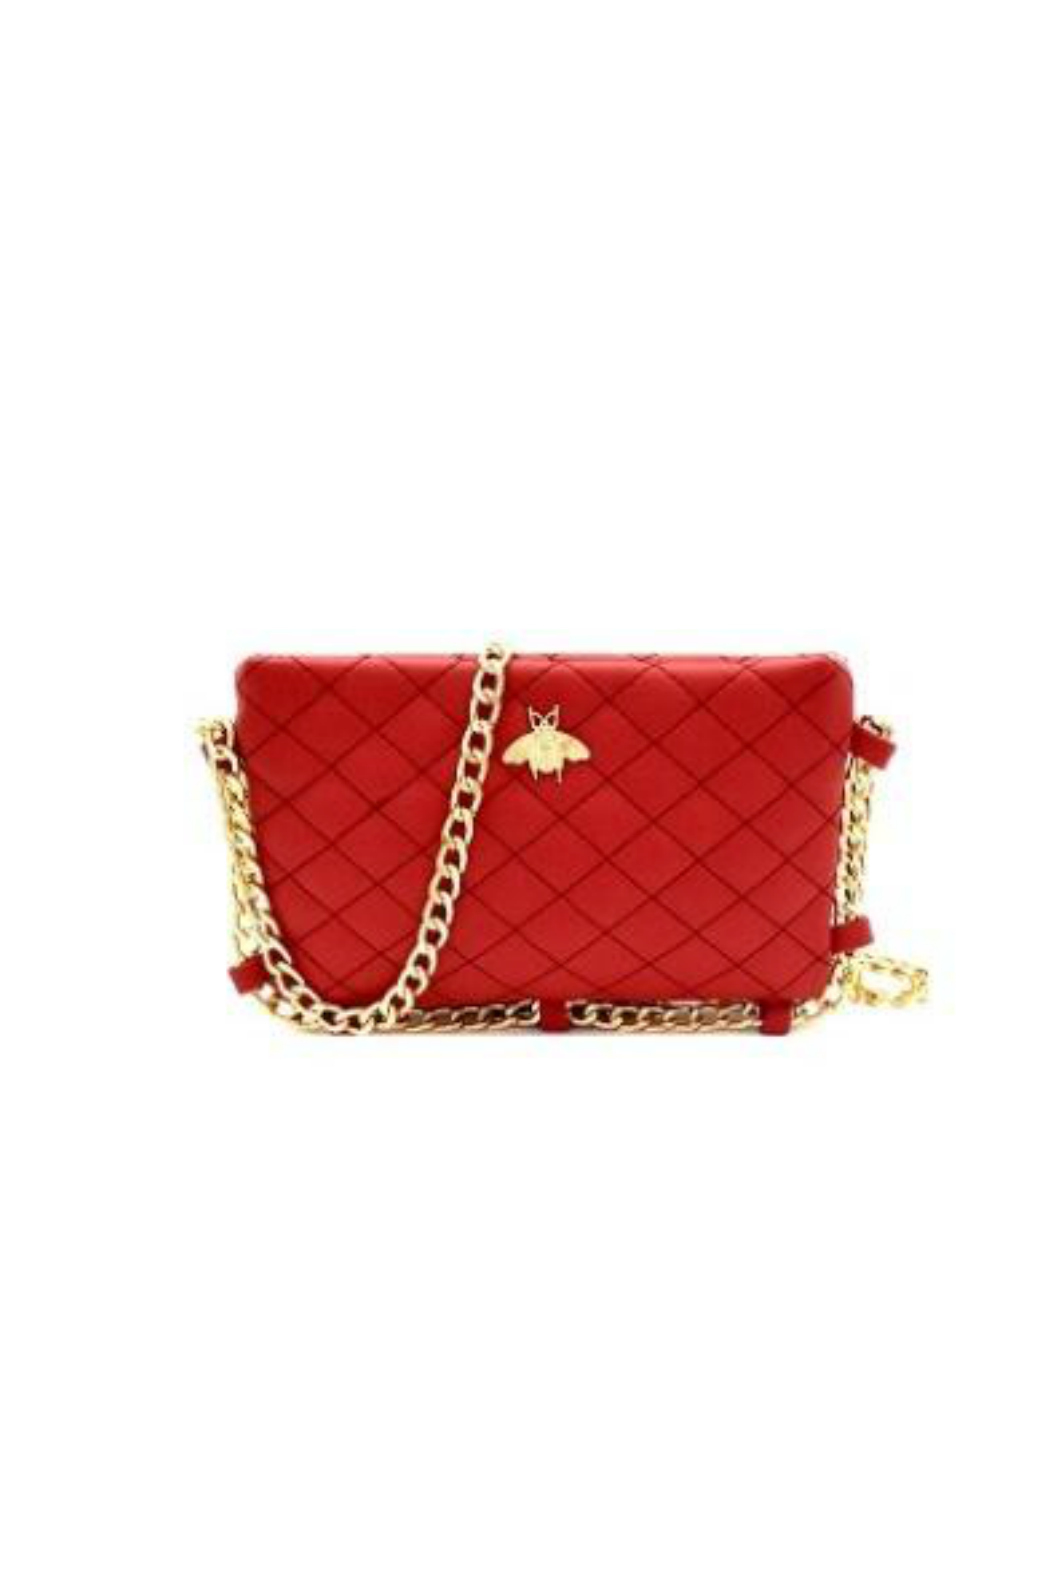 Gift Girl Quilted bee crossbody with gold chain strap - Front Cropped Image 963572194e